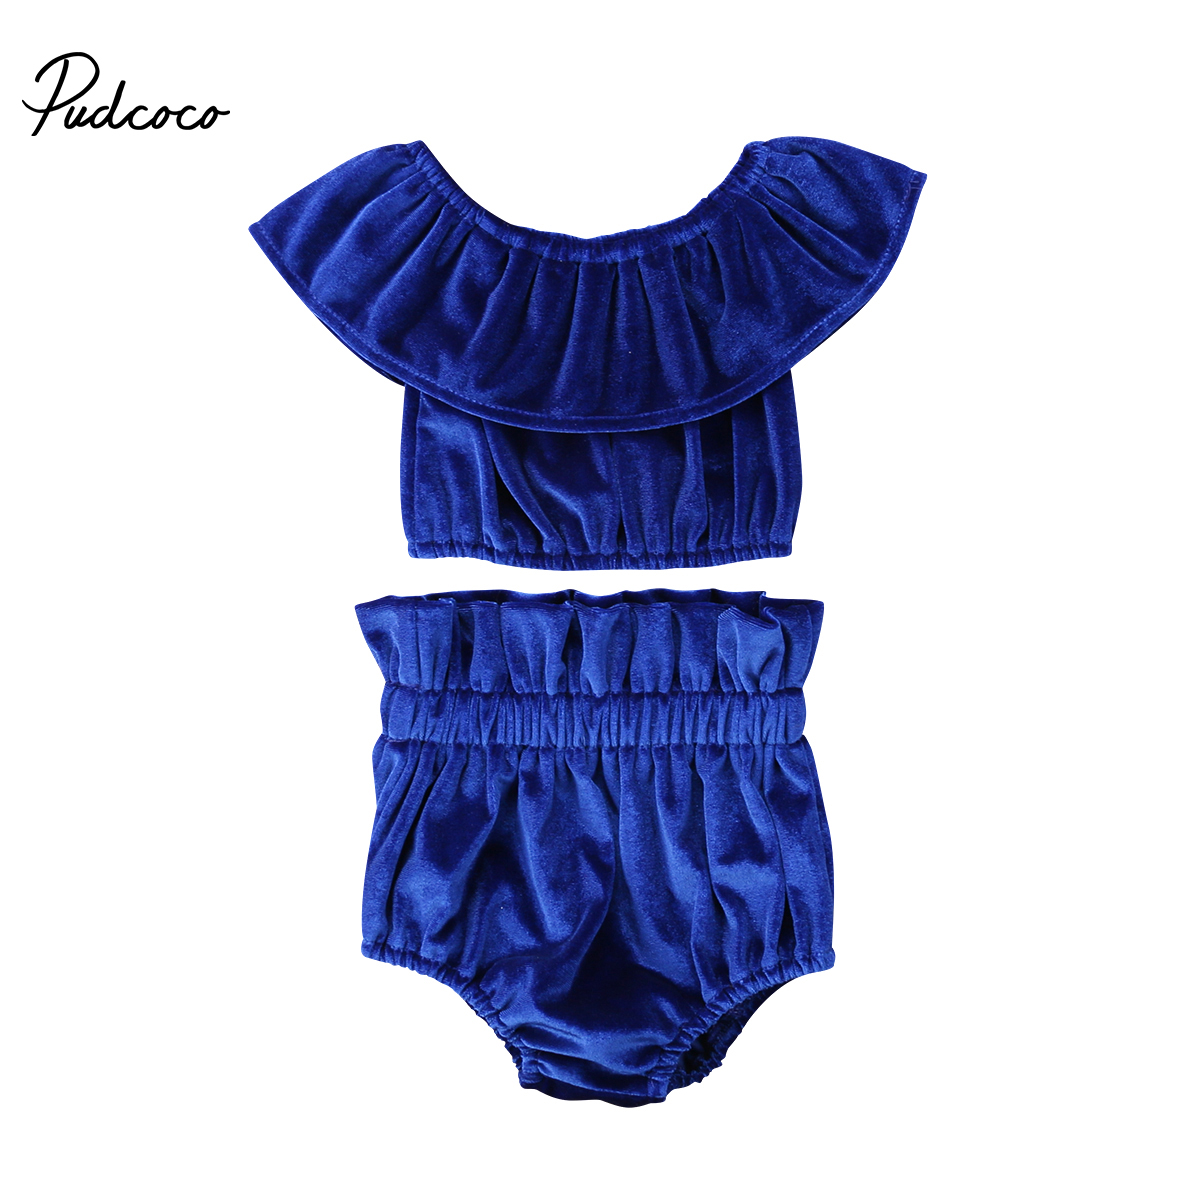 Adorable 2018 Newborn Kids Baby Girls Off Shoulder Ruffle Short Sleeve Cute Set Tops Shorts 2Pcs Outfits Clothes